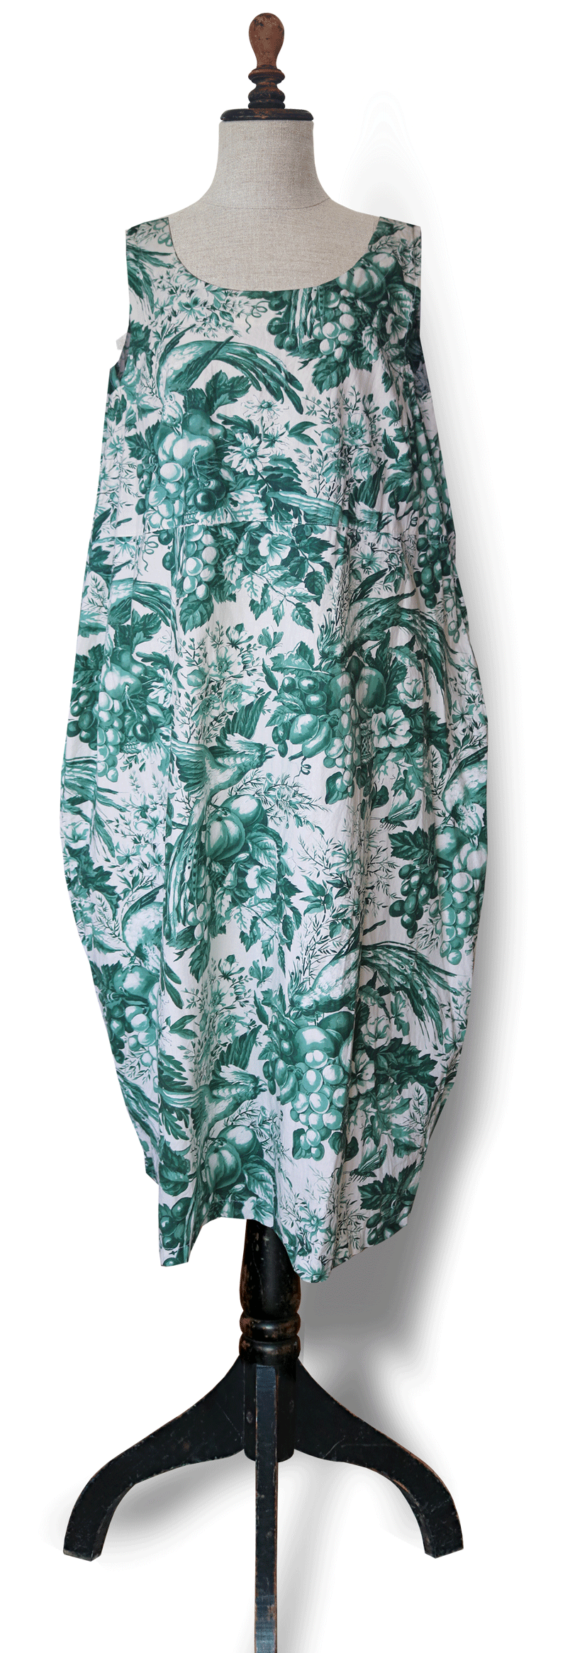 Green Toile Cotton Dress – Julie London front